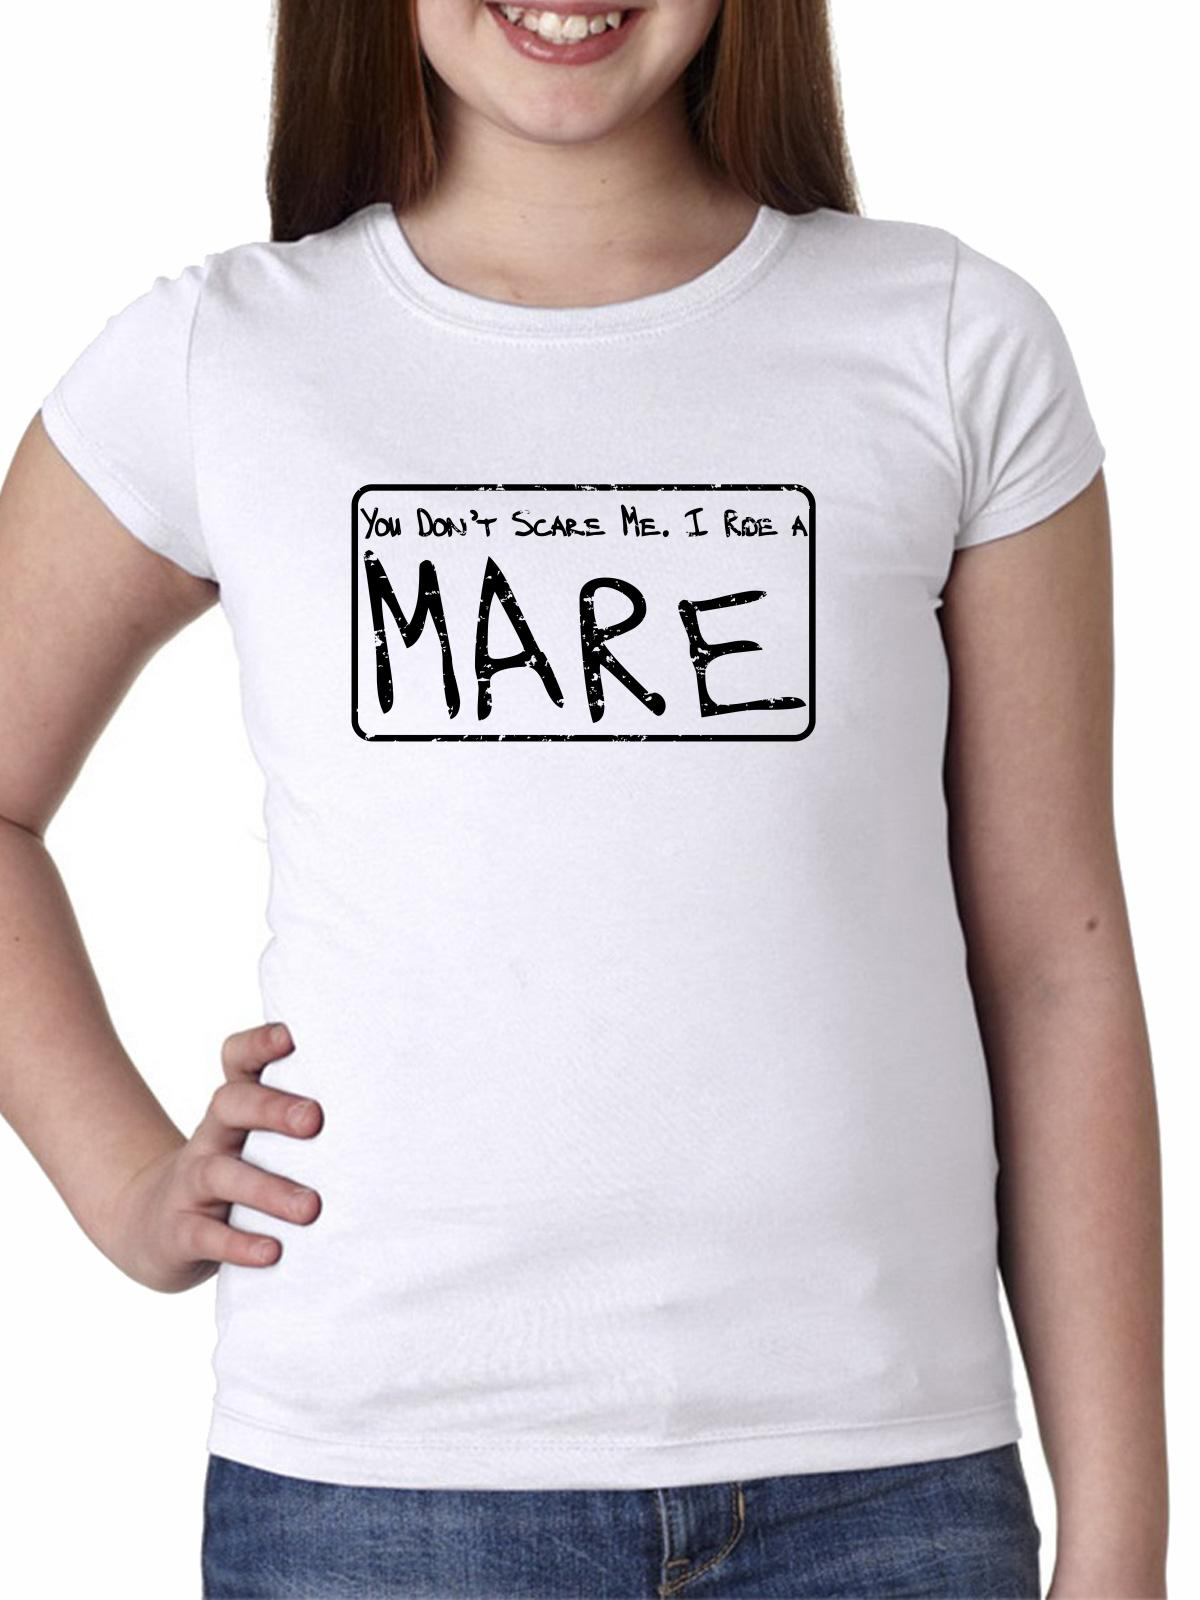 You Don't Scare Me, I Ride a Mare - Horse Equestrian Girl's Cotton Youth T-Shirt